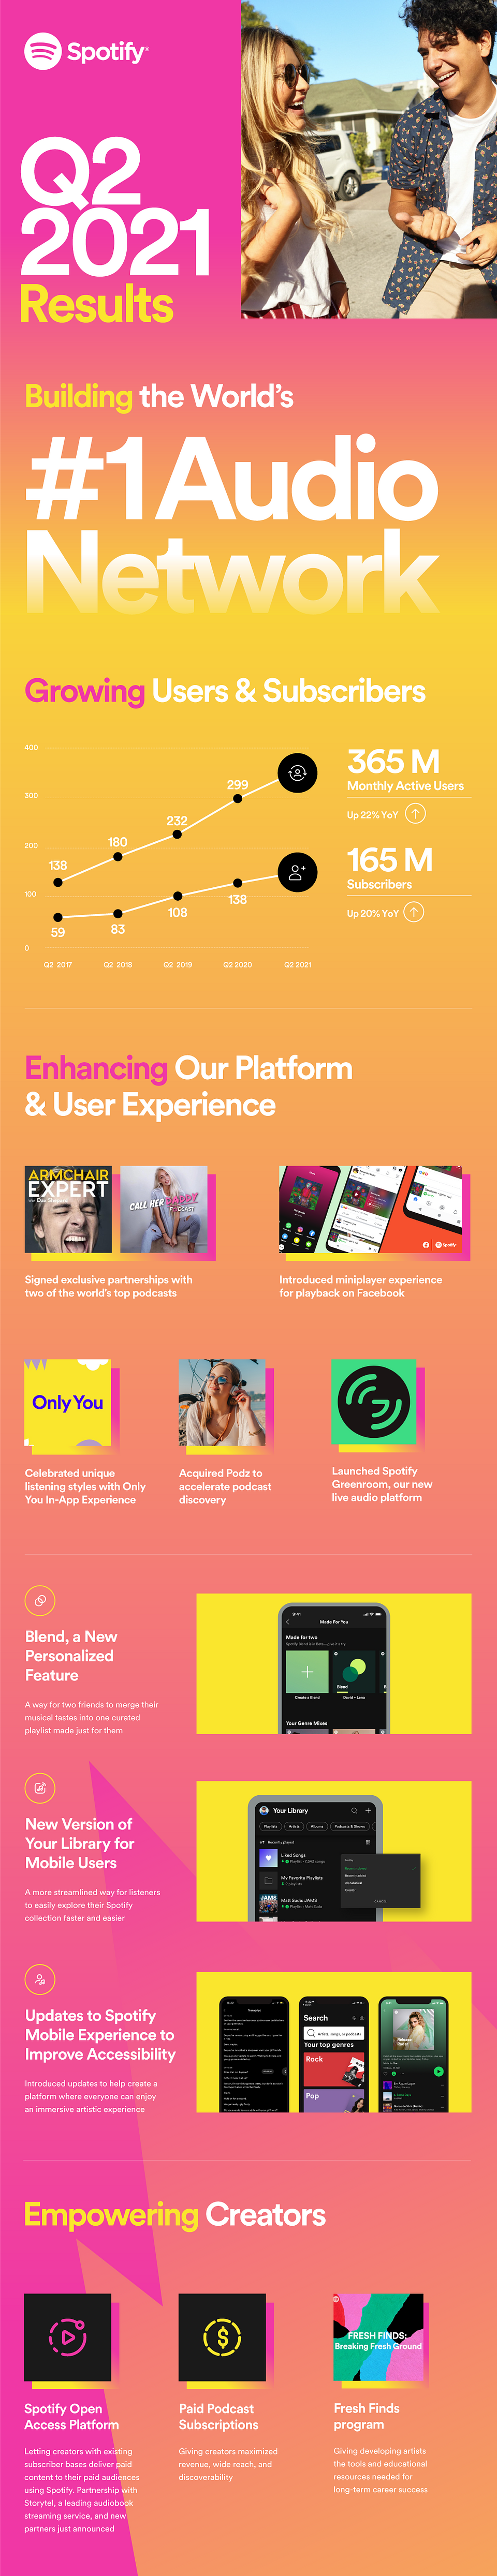 Spotify-Q2-2021-Earnings-Infographic.png